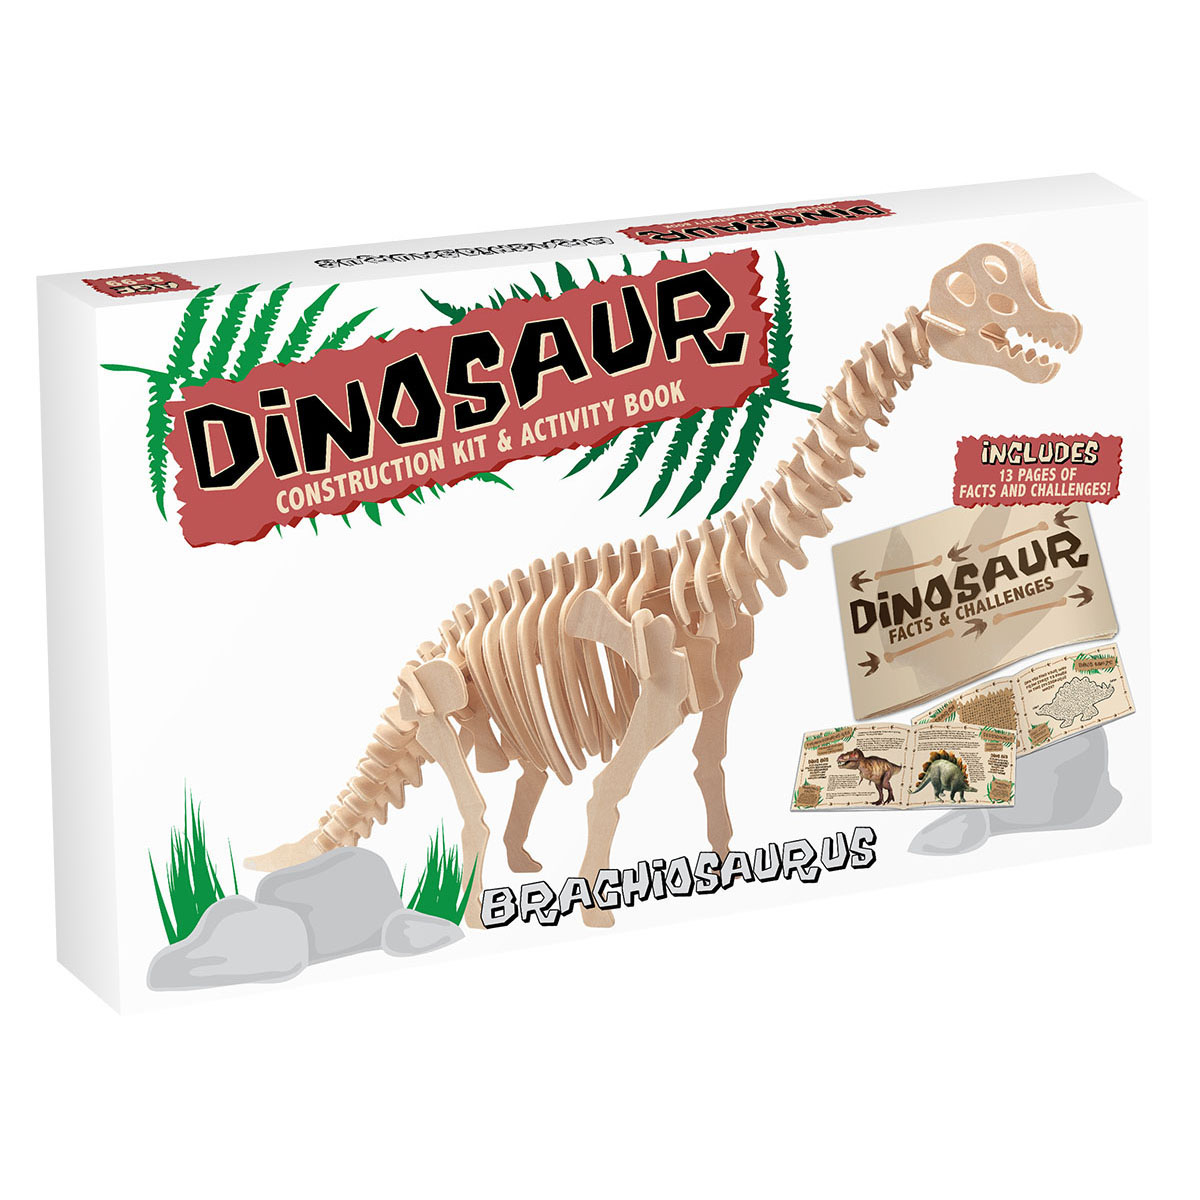 Dinosaur Construction Kit - Brachiosaurus